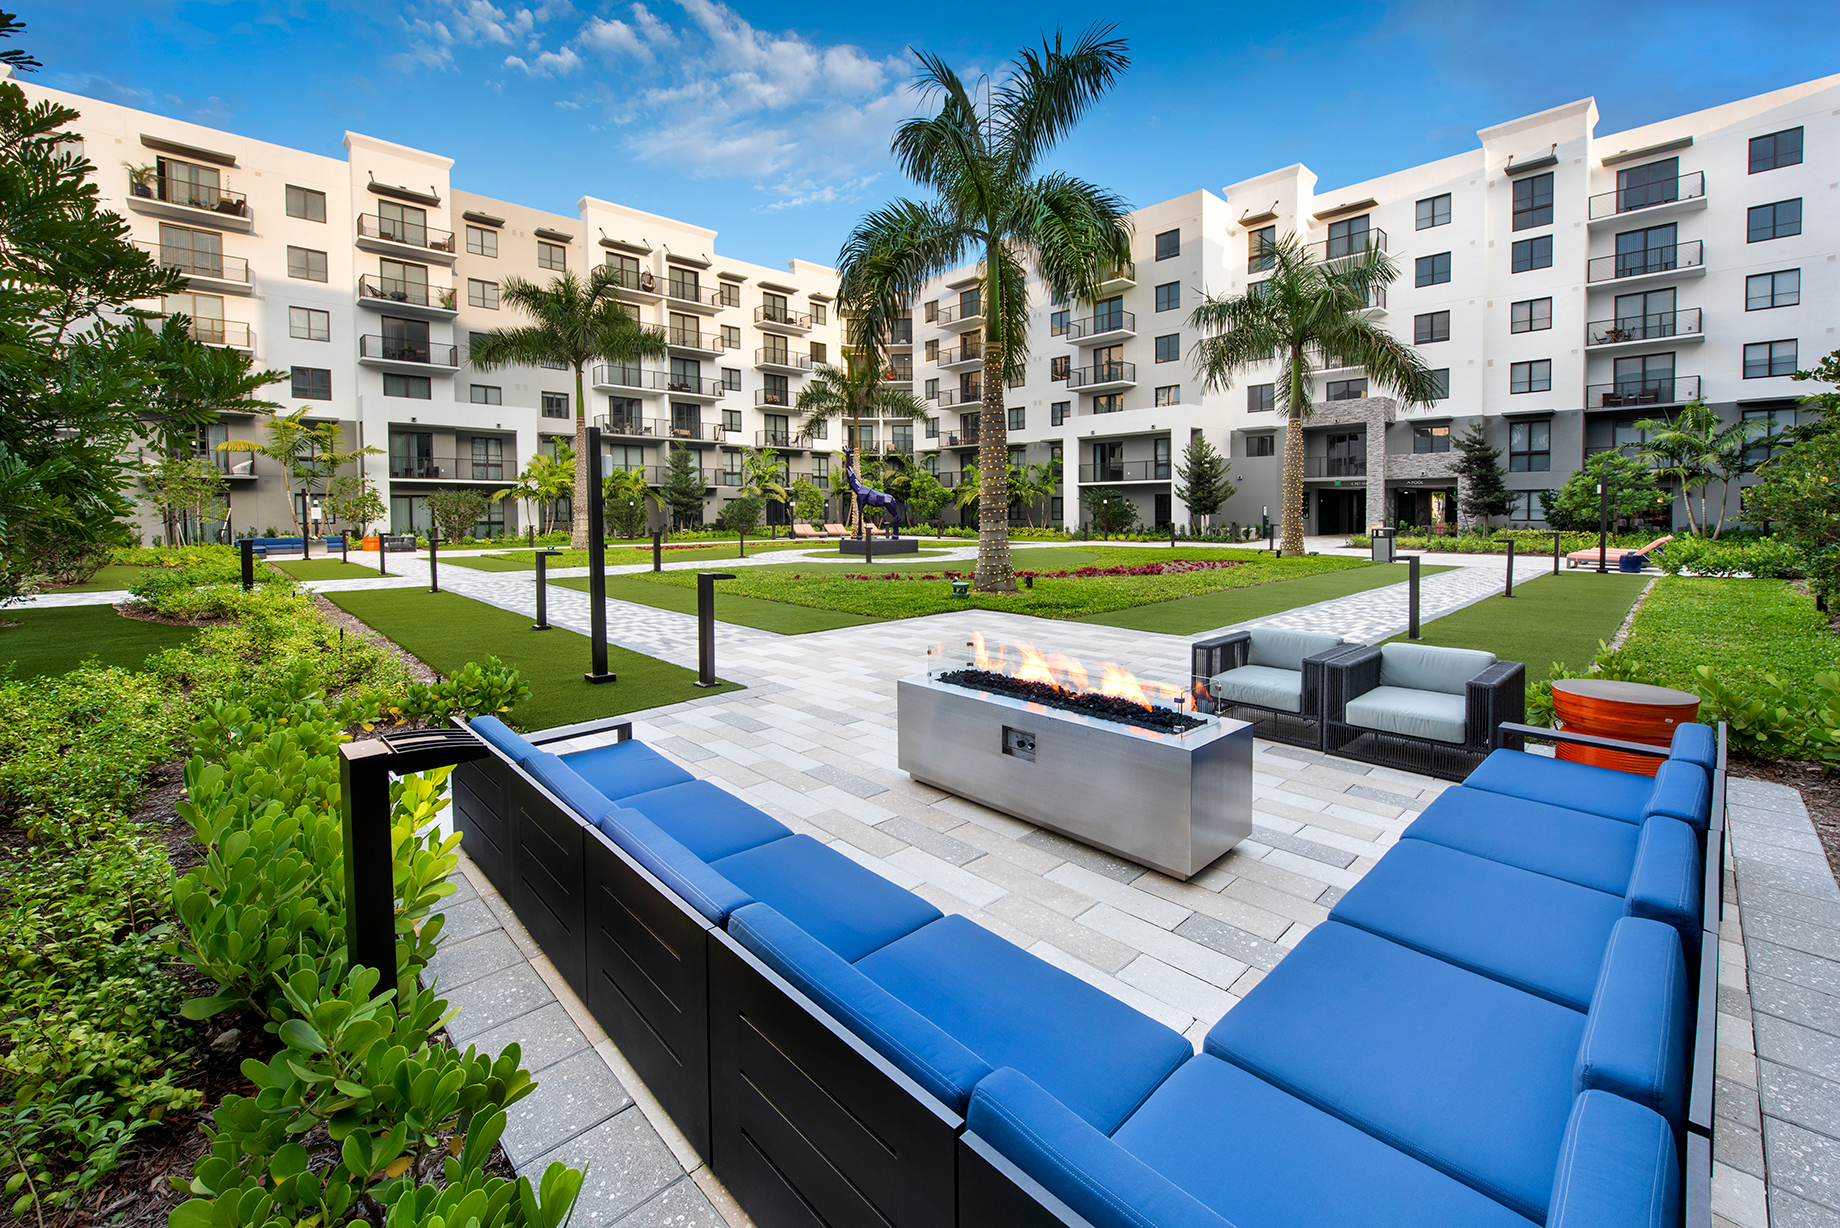 Courtyard Lounge area at Sanctuary Doral